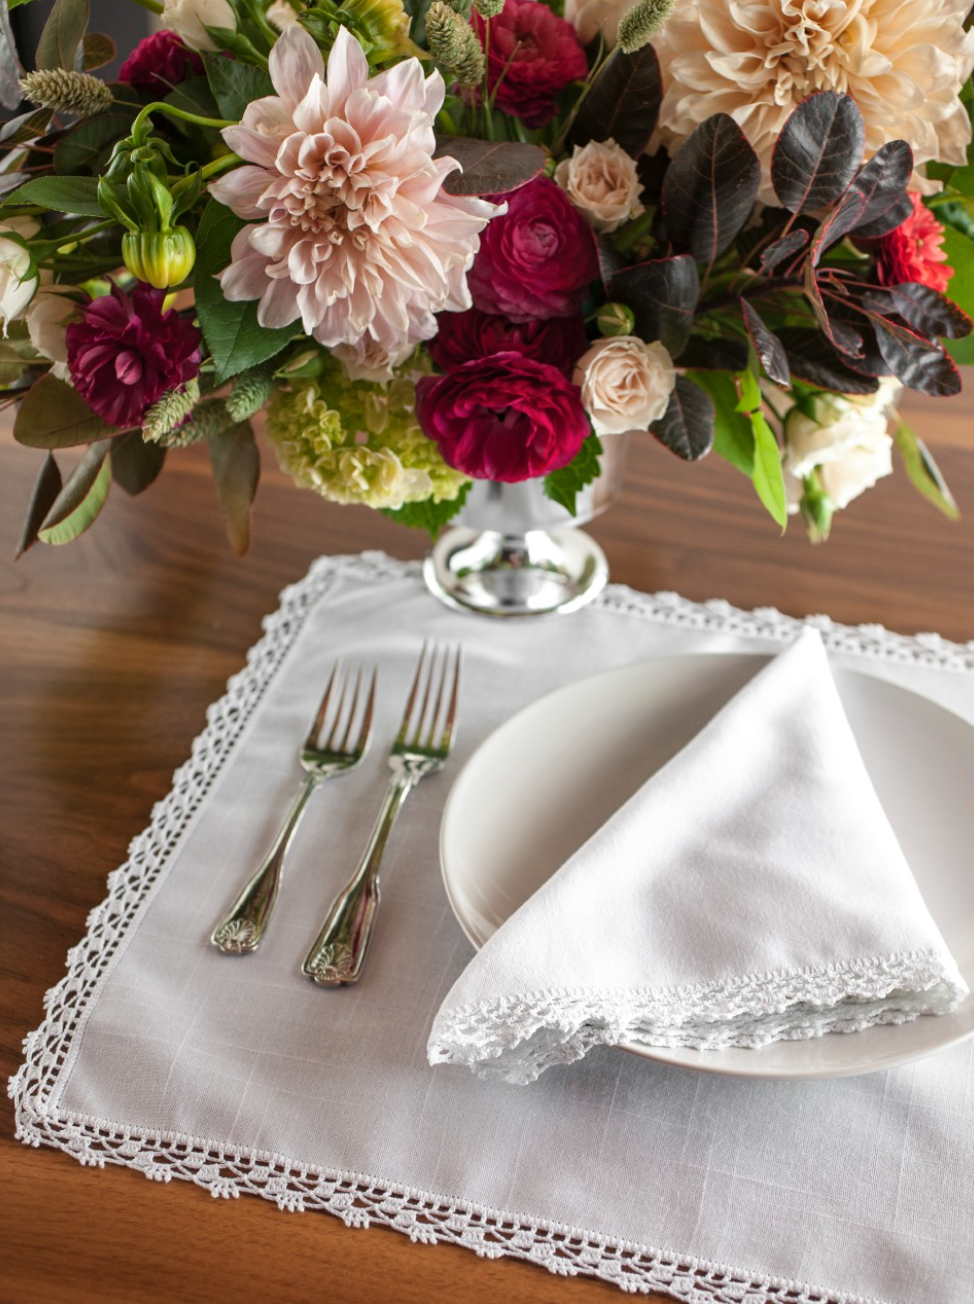 Stock Images Maxit Flower, Design Debora, Smail Hibiscus Linens, Houston, Texas